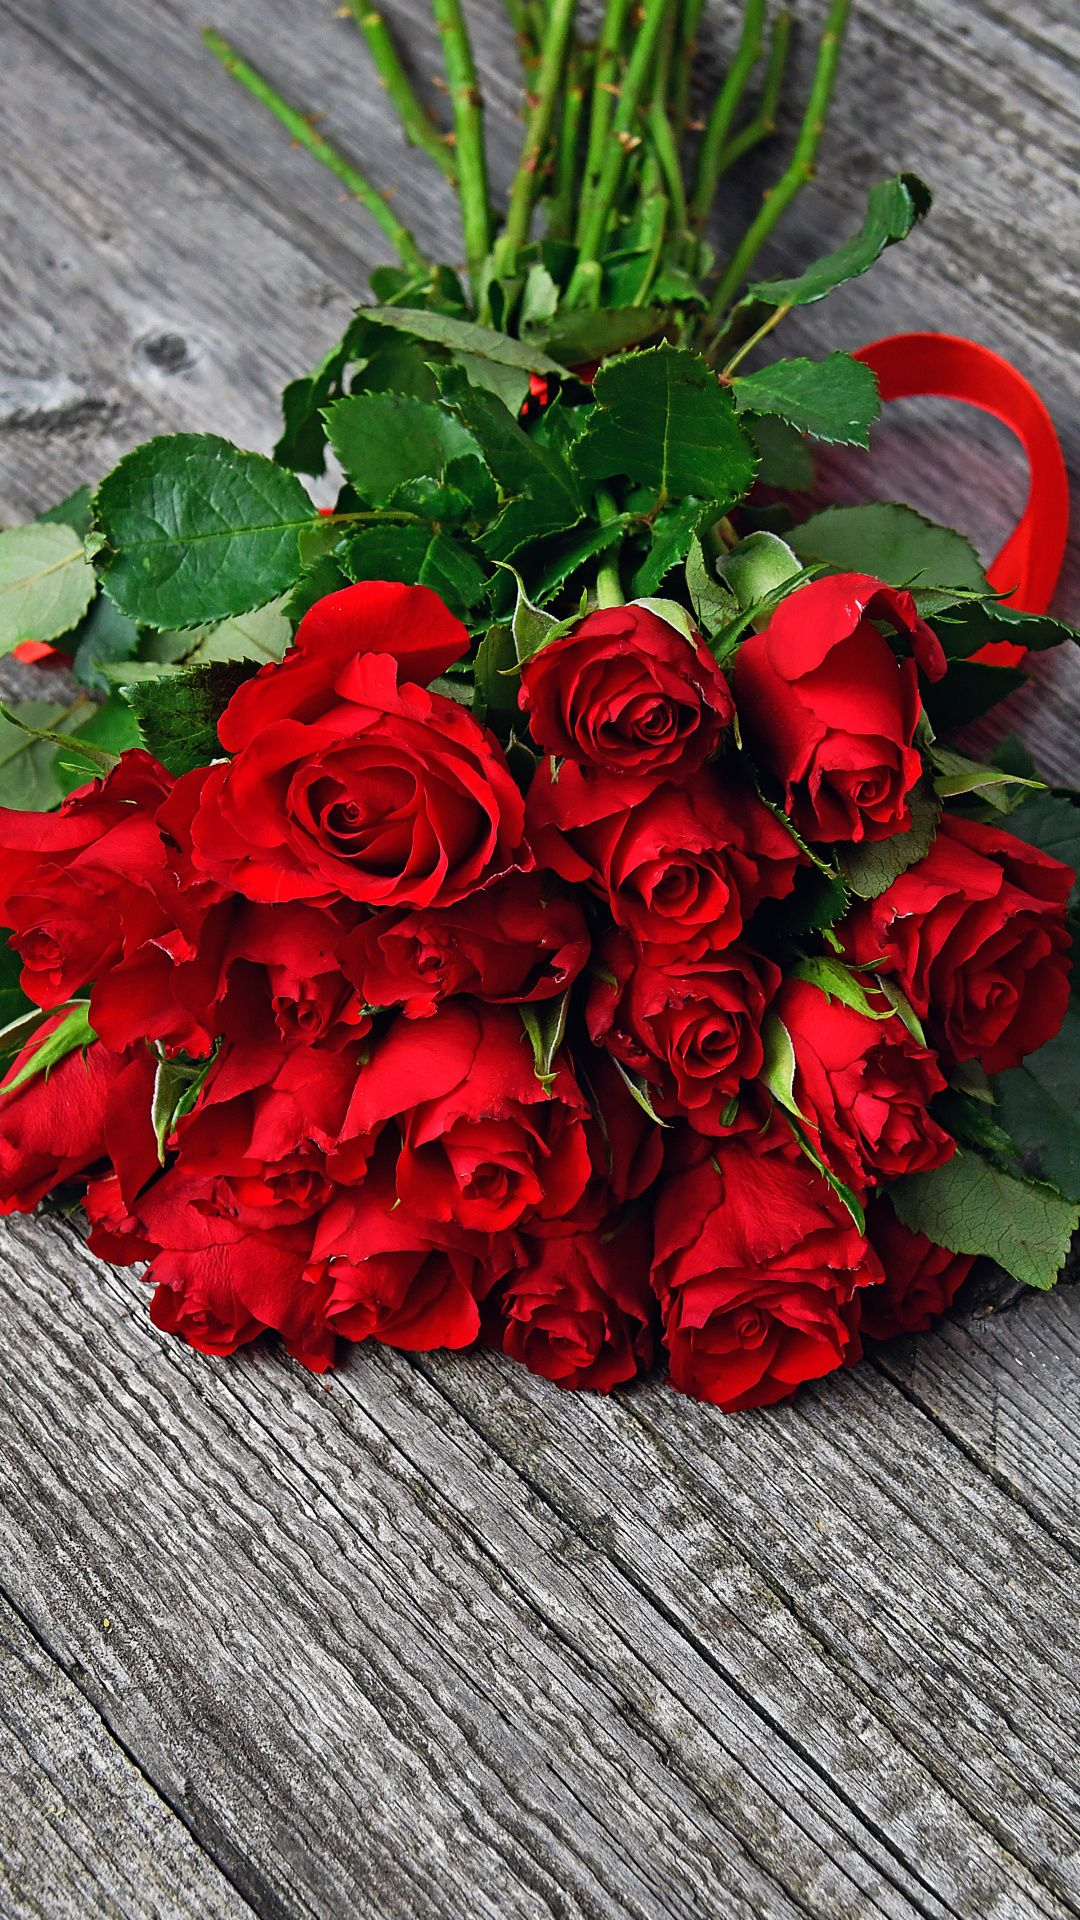 Romantic Red Roses Flowers Wallpaper Red Flower Bouquet Rose Flower Wallpaper Red Roses Wallpaper